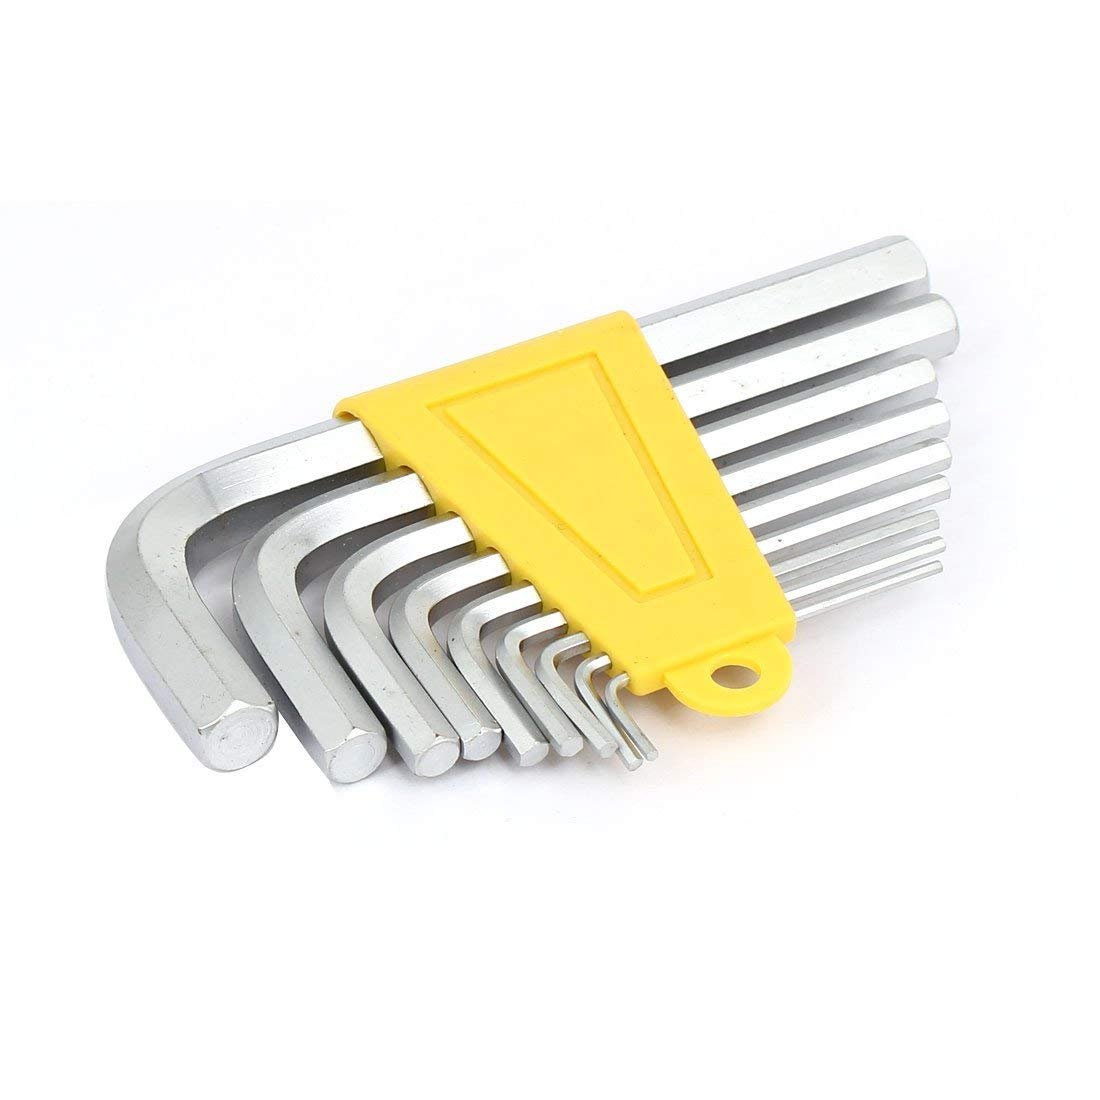 Uxcell a15052300ux0068 H5 5mm Tip Shaft T Handle Ball Head Hex Hexagon Key Wrench Hand Tool